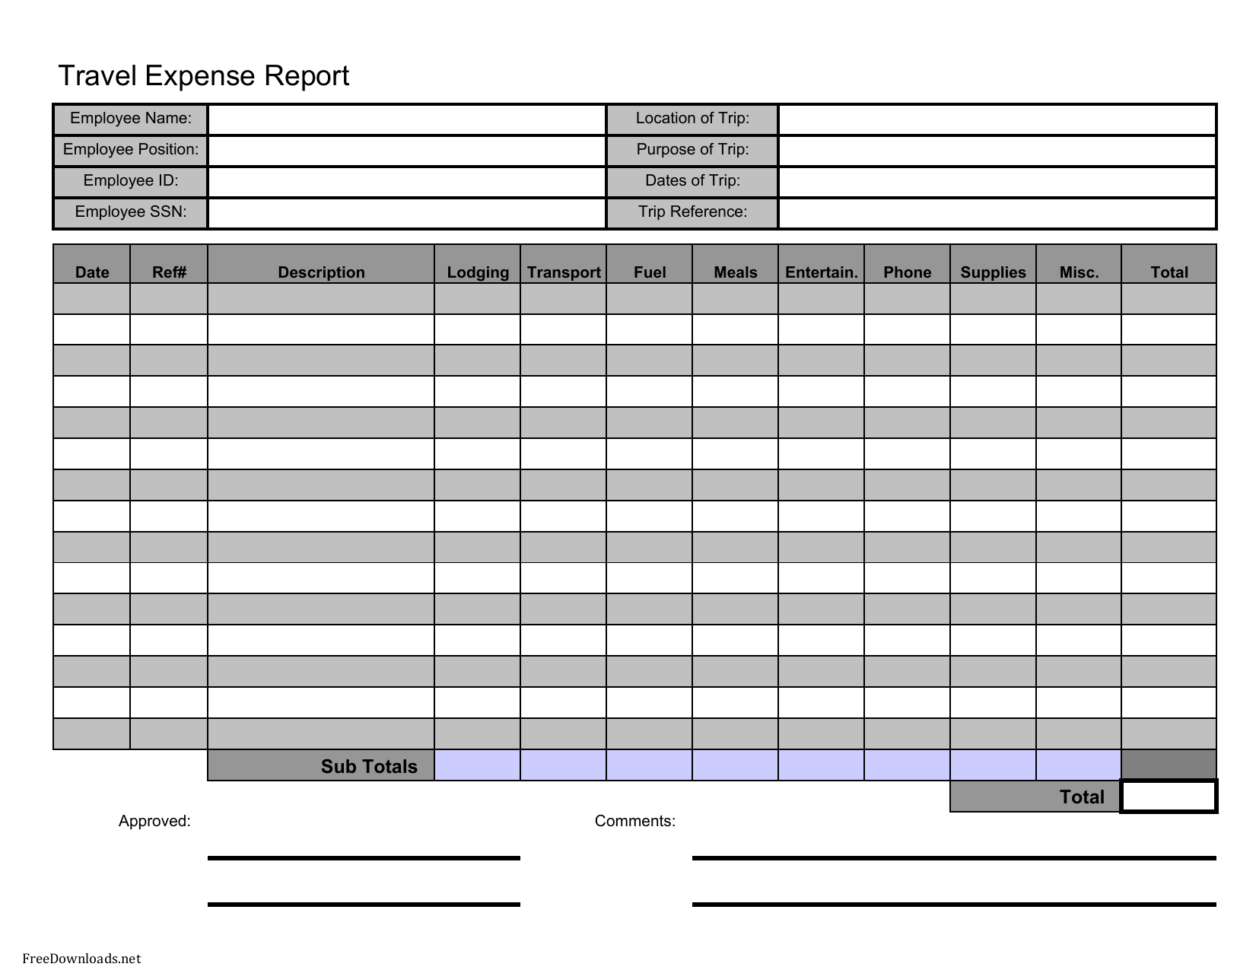 Travel Expense Spreadsheet For Download Travel Expense Report Template  Excel  Pdf  Rtf  Word